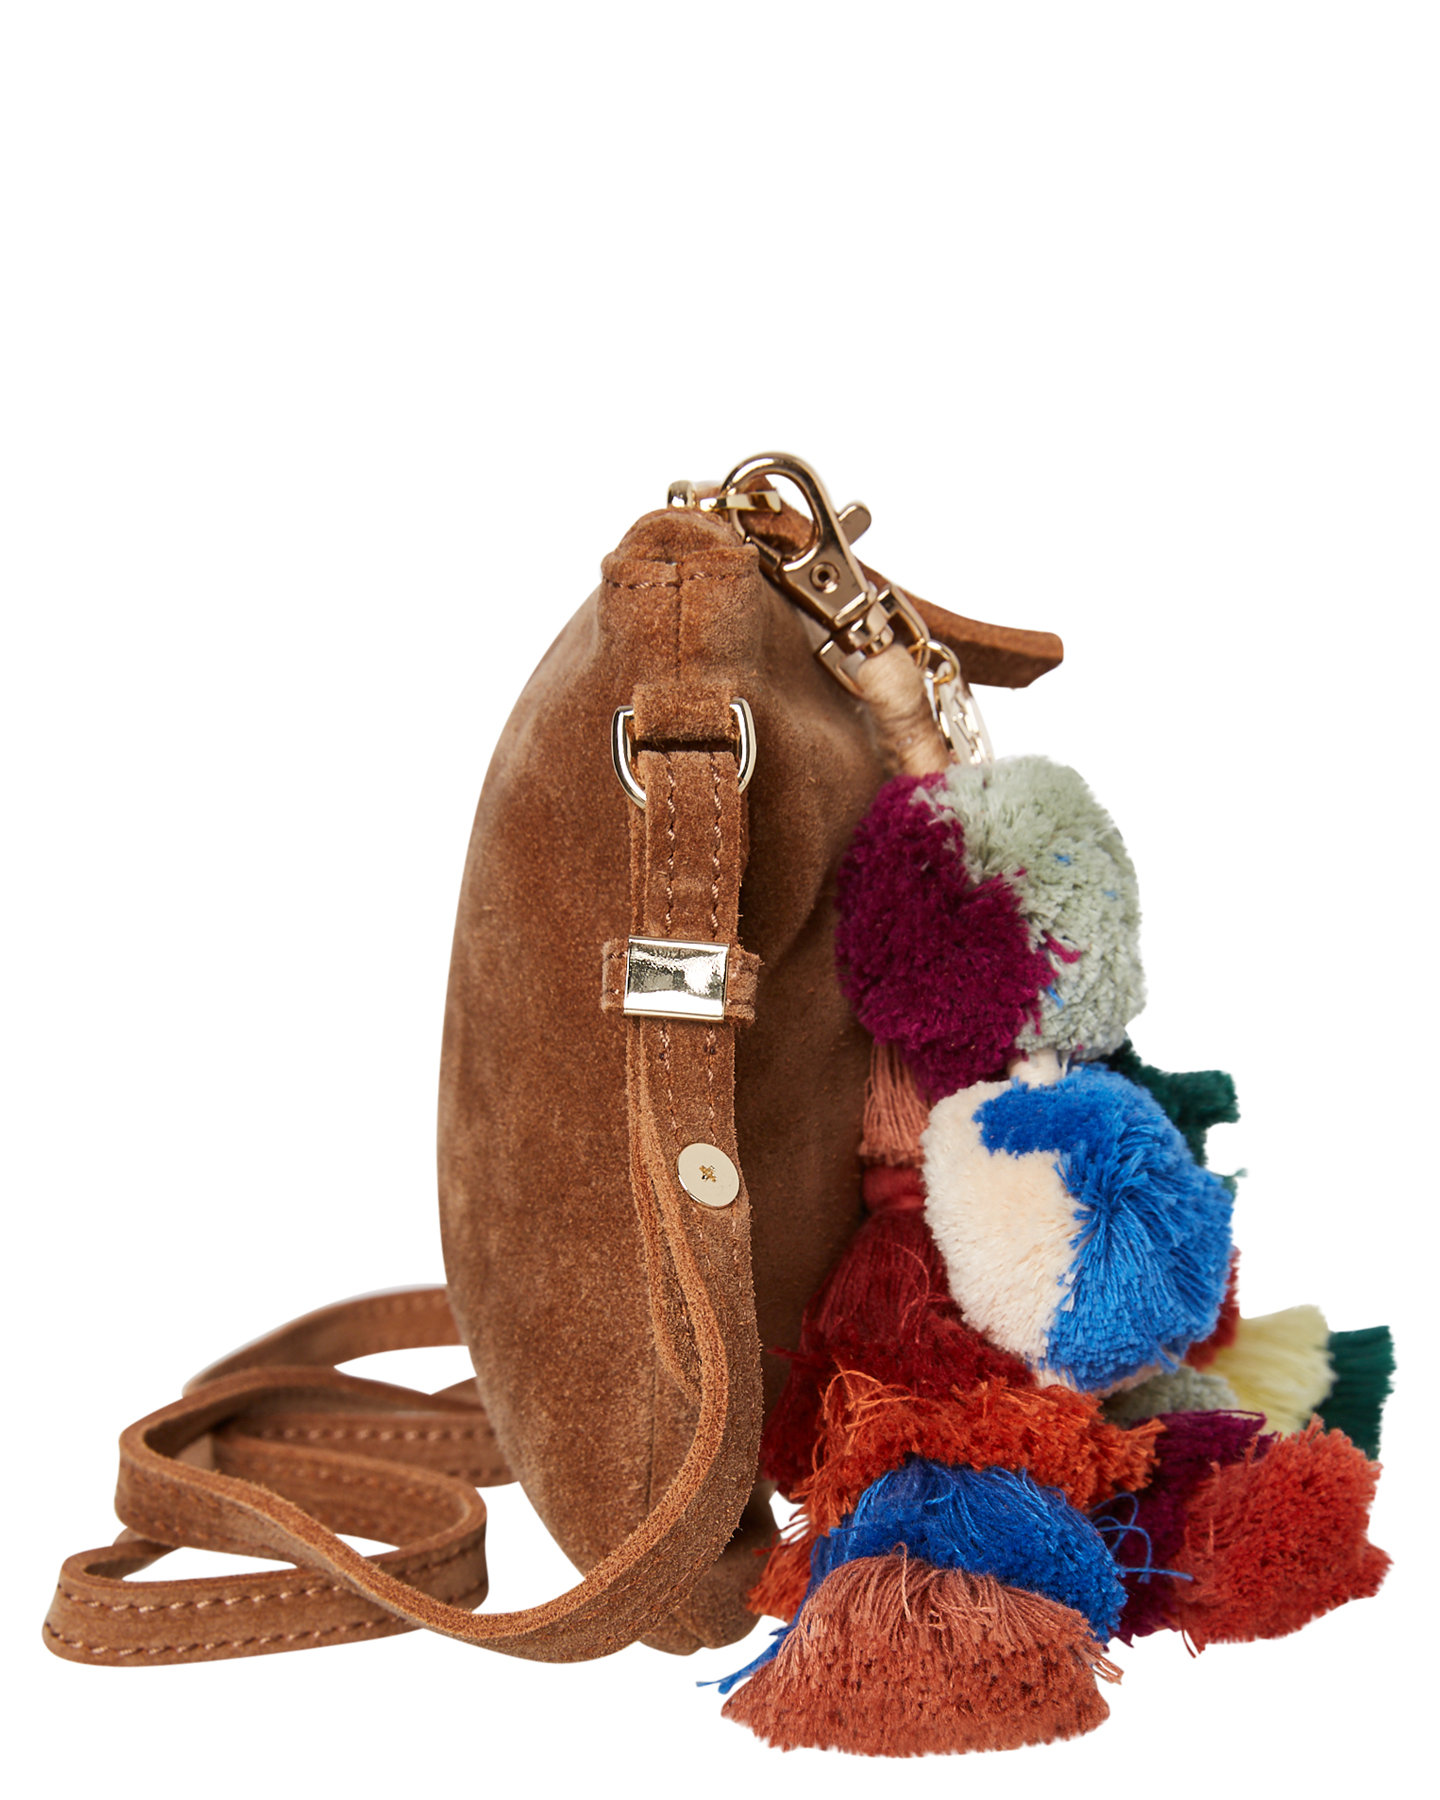 New-The-Wolf-Gang-Women-039-s-Rio-Cross-Body-Bag-Suede-Canvas-Pink thumbnail 12